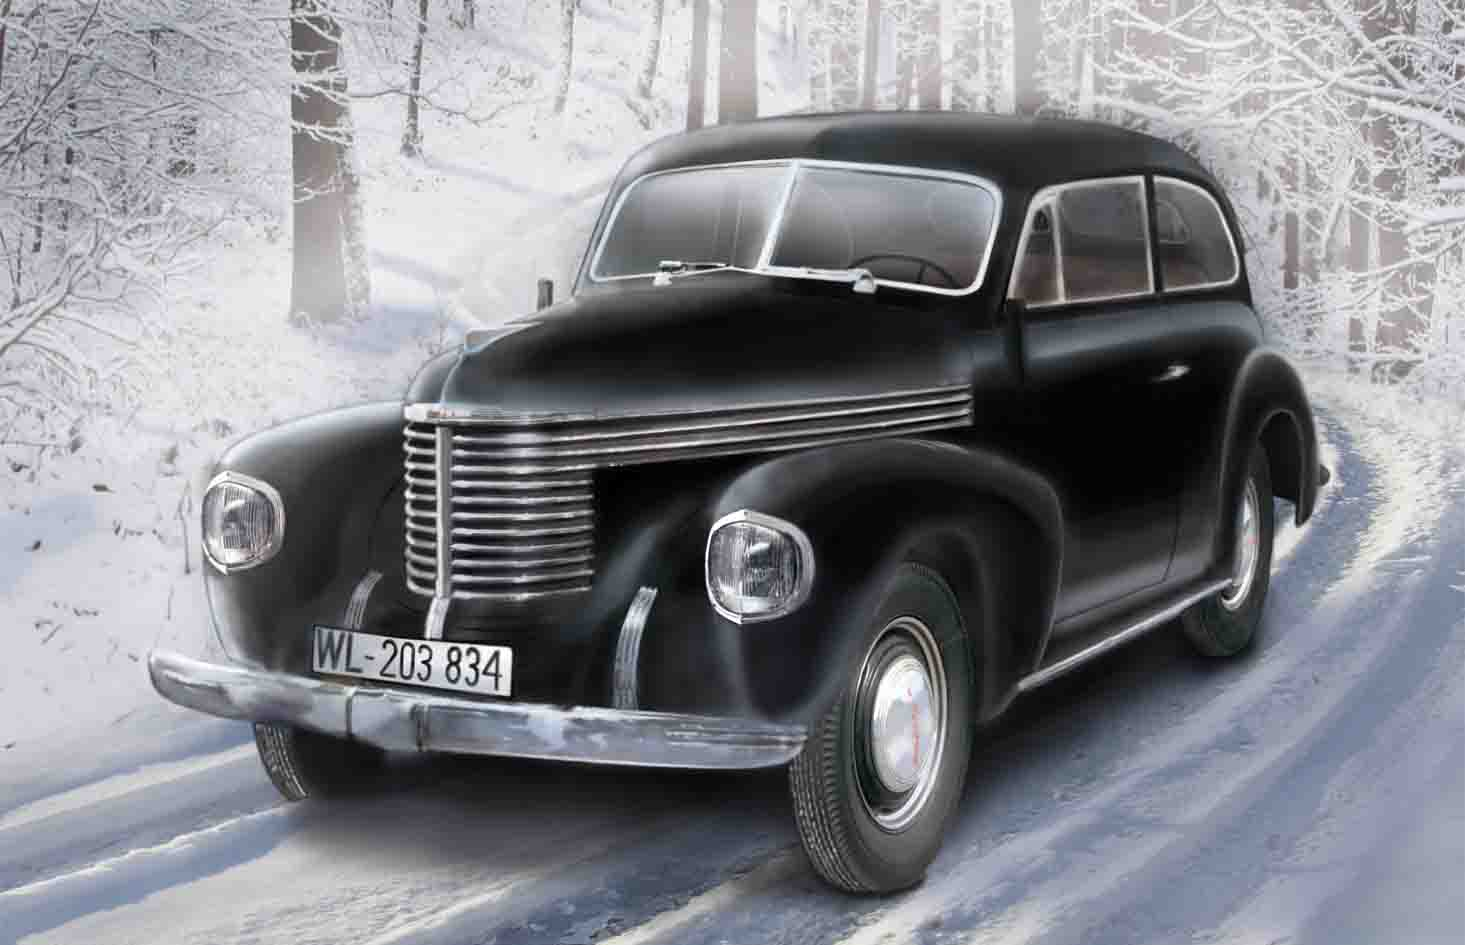 ICM Kapitän 2-door Saloon, WWII German Staff Car